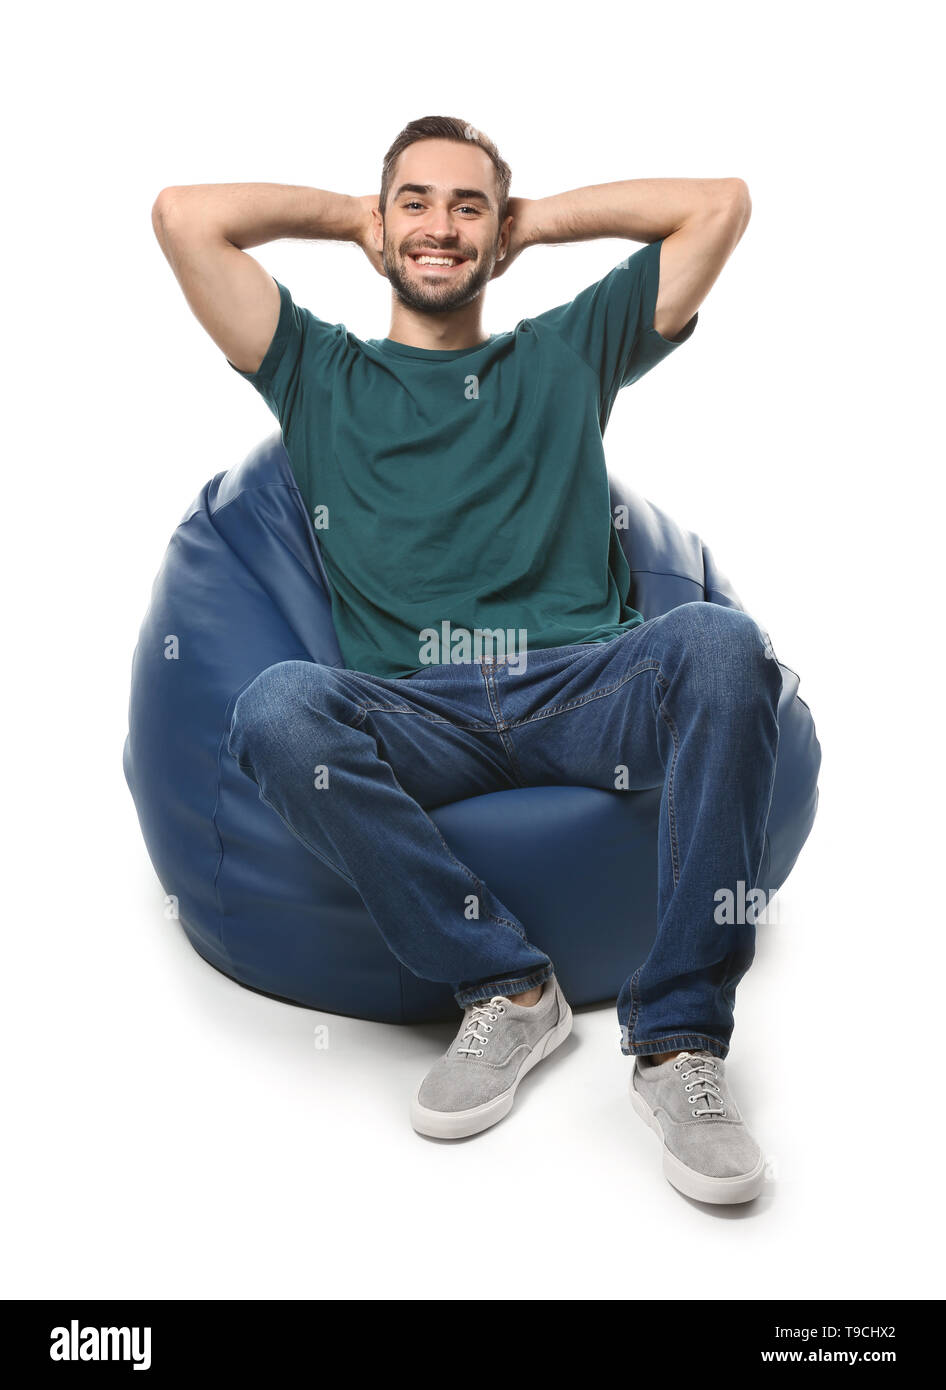 Young man sitting on beanbag chair against white background - Stock Image